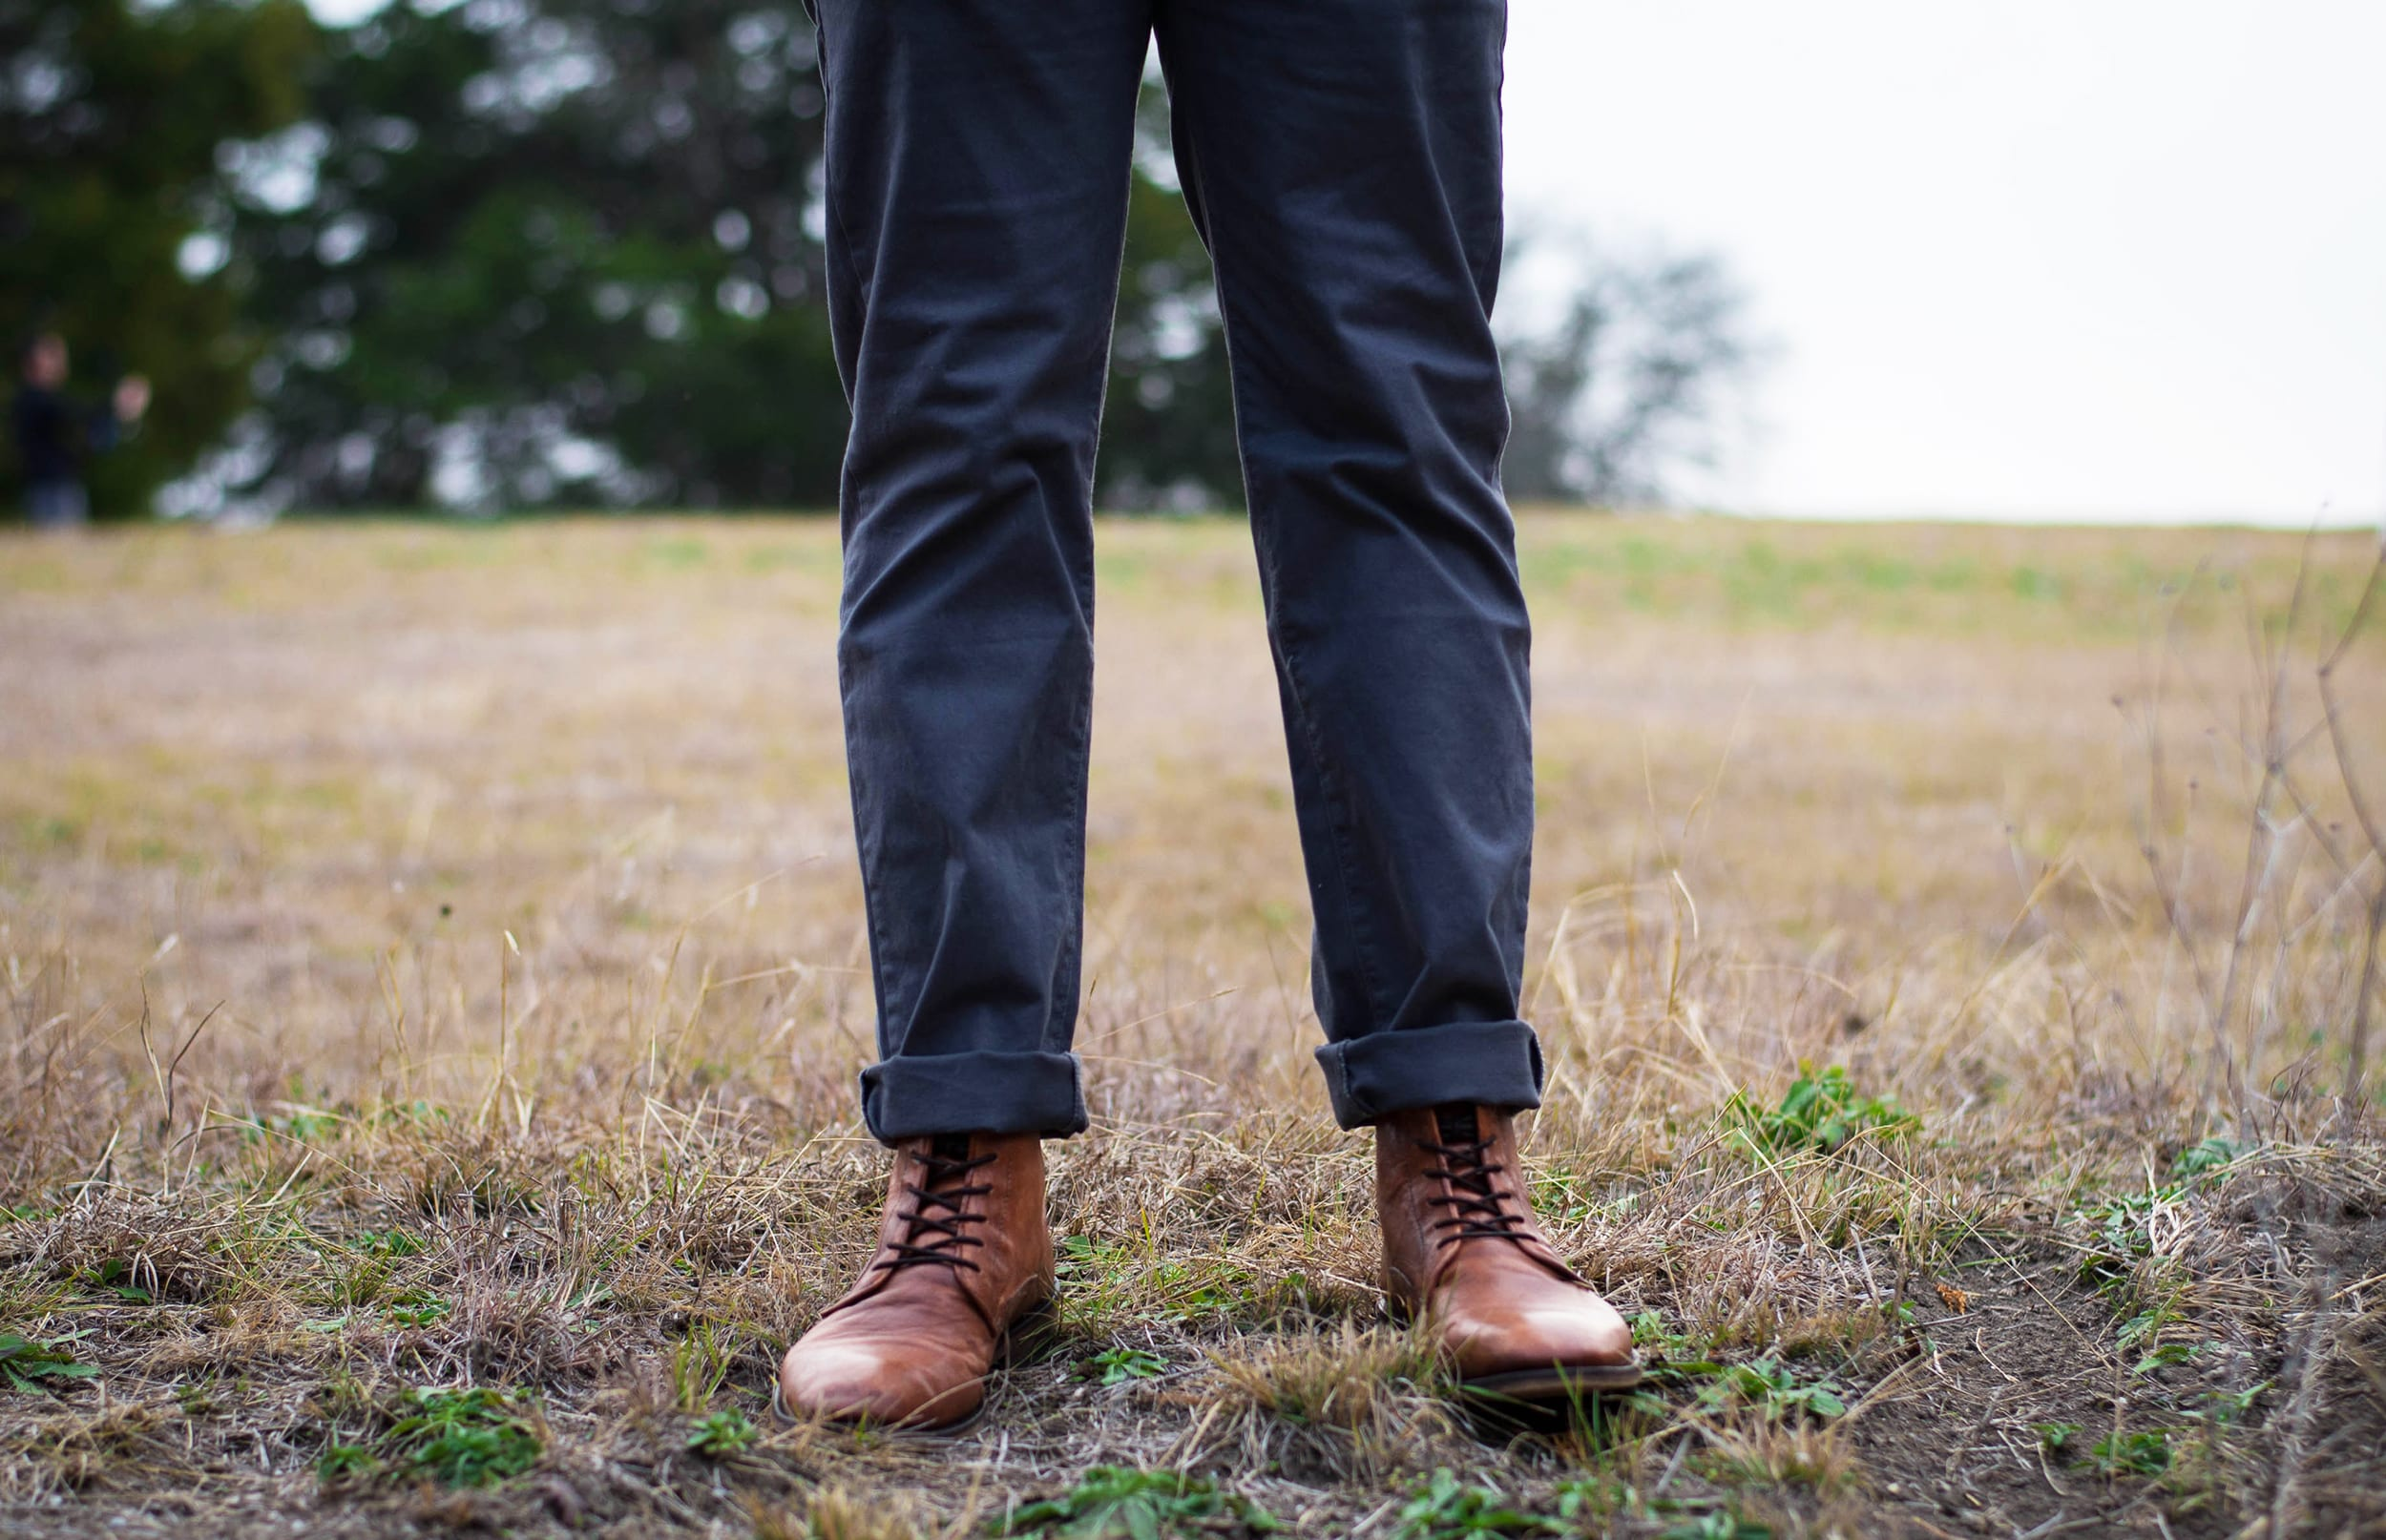 22ae059a87b Here are six of the best travel pants in 2019 and what you should look for  in a really great pair of travel pants for every kind of trip